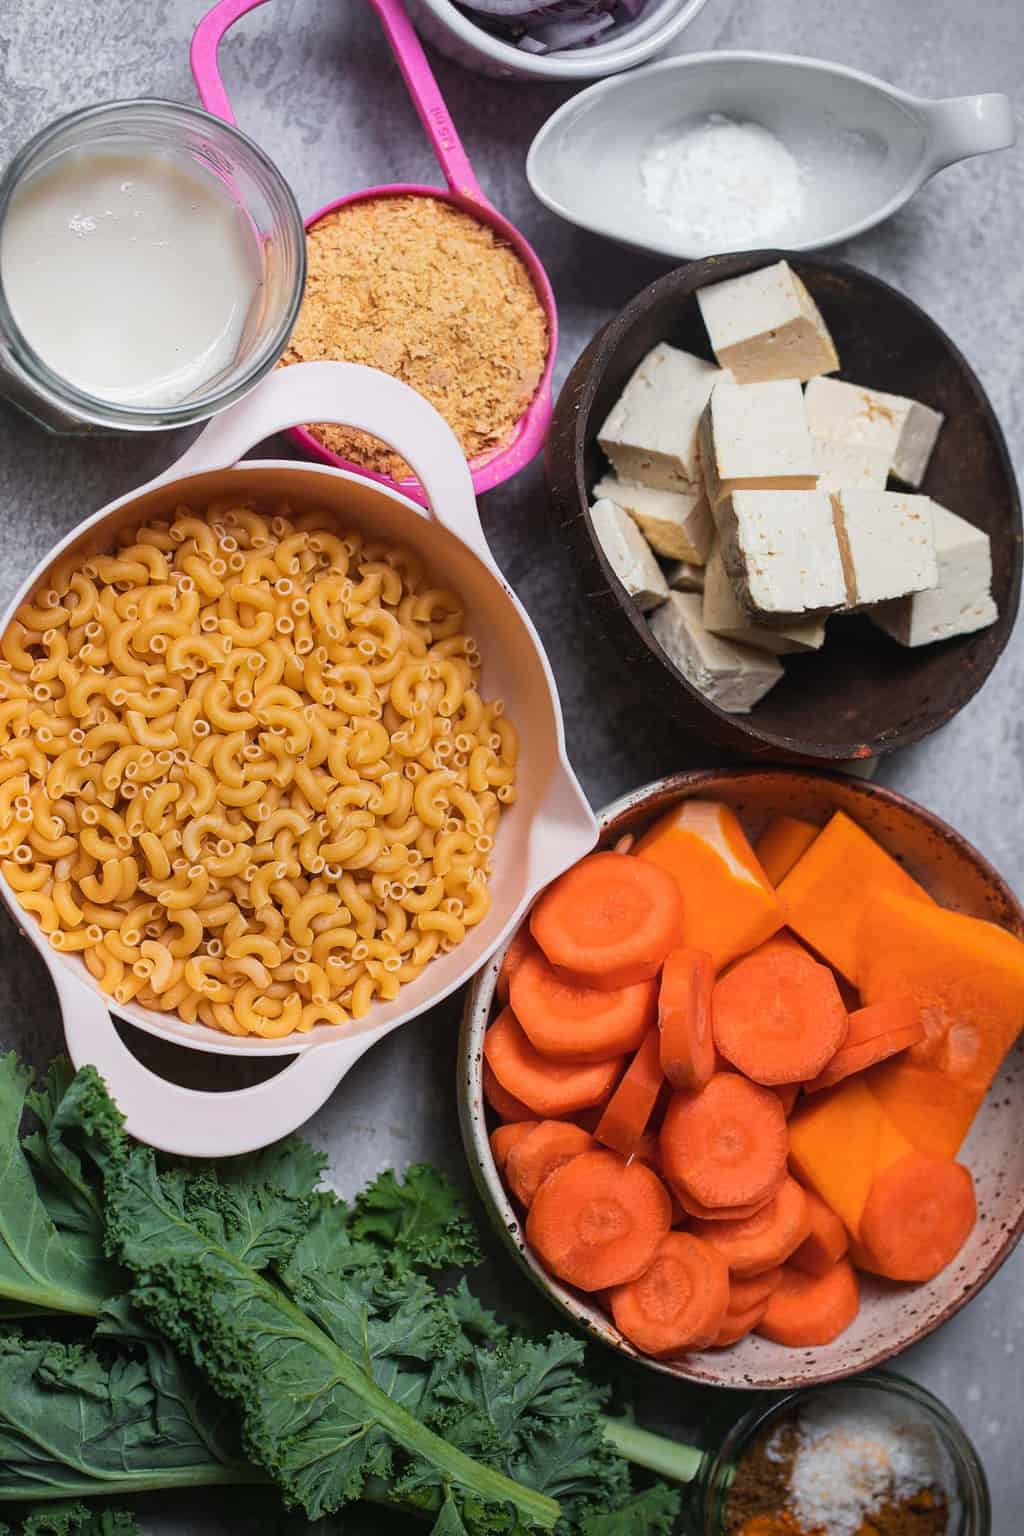 Ingredients for vegan butternut squash mac and cheese